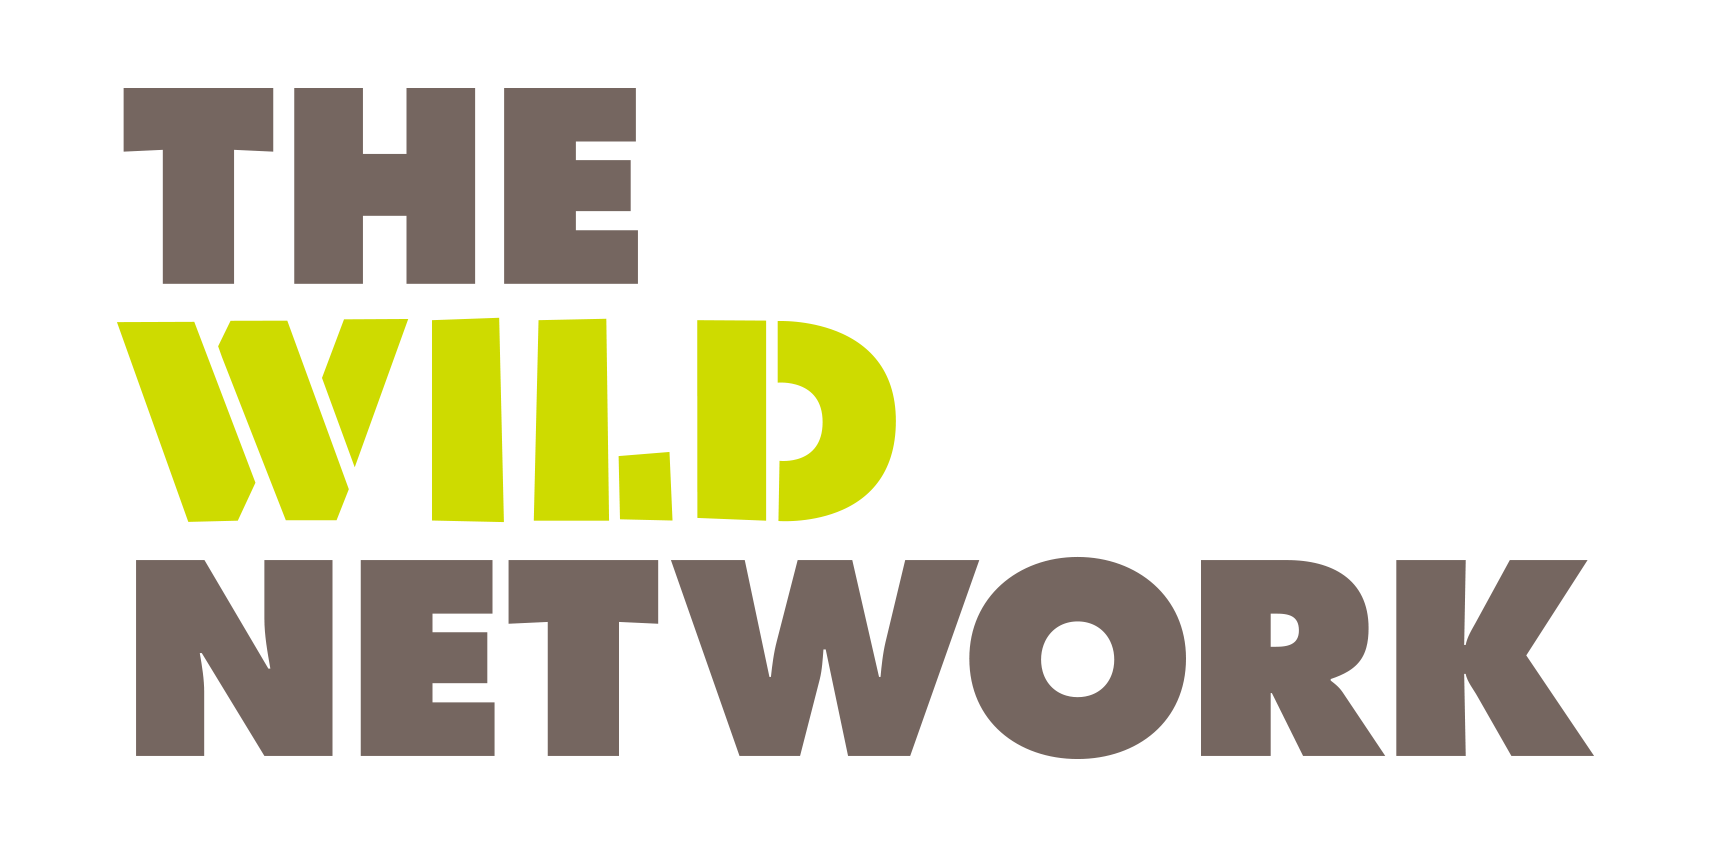 Inspiration: The Wild Network. Deeper engagement in the issue using content, stories, curation and community - ideas and inspiration for kids and parents.